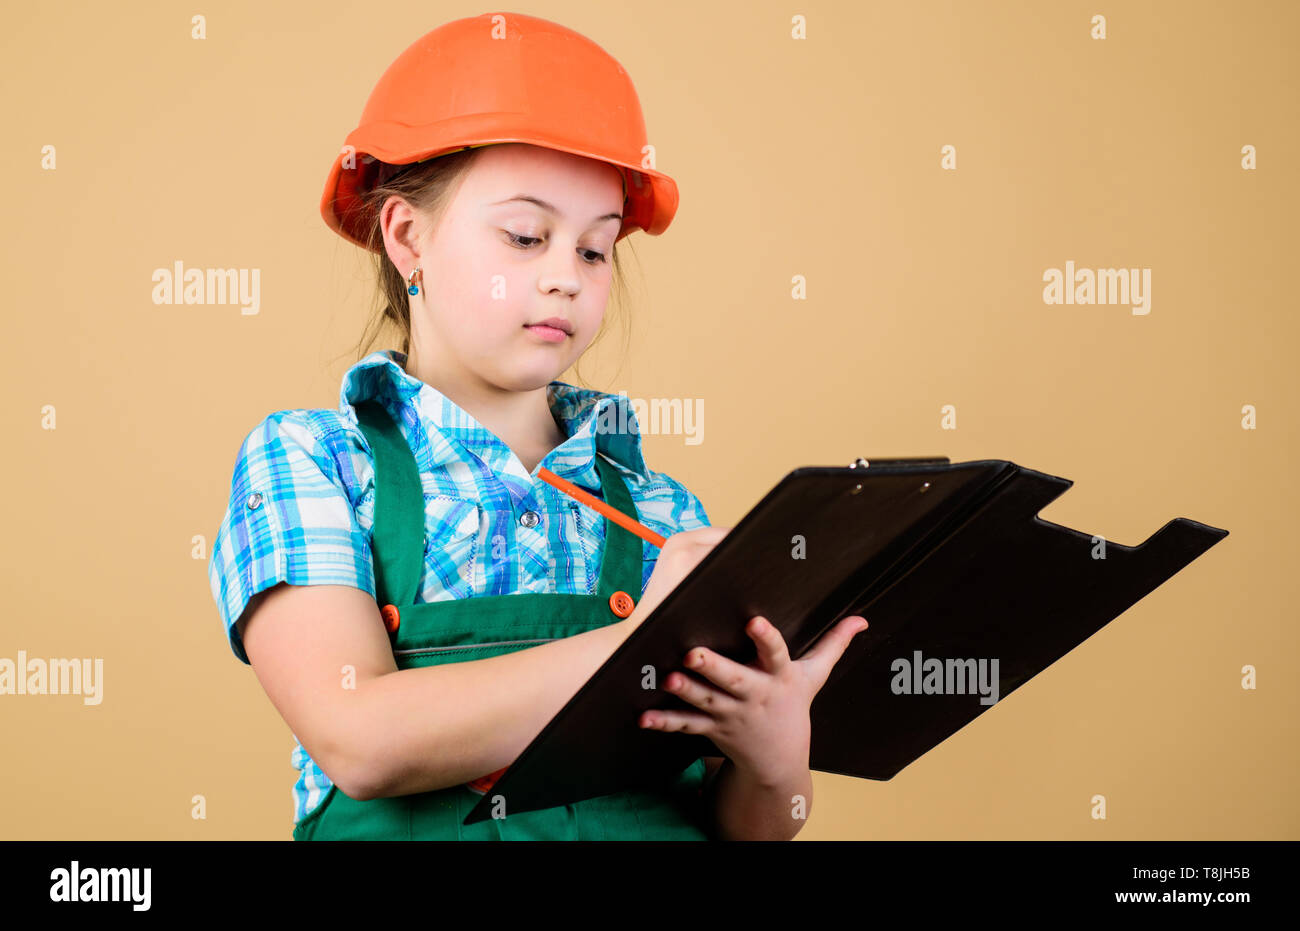 Future profession. Kid builder girl. Build your future yourself. Initiative child girl hard hat builder worker. Child care development. Safety expert. Foreman planning. Builder engineer architect. - Stock Image